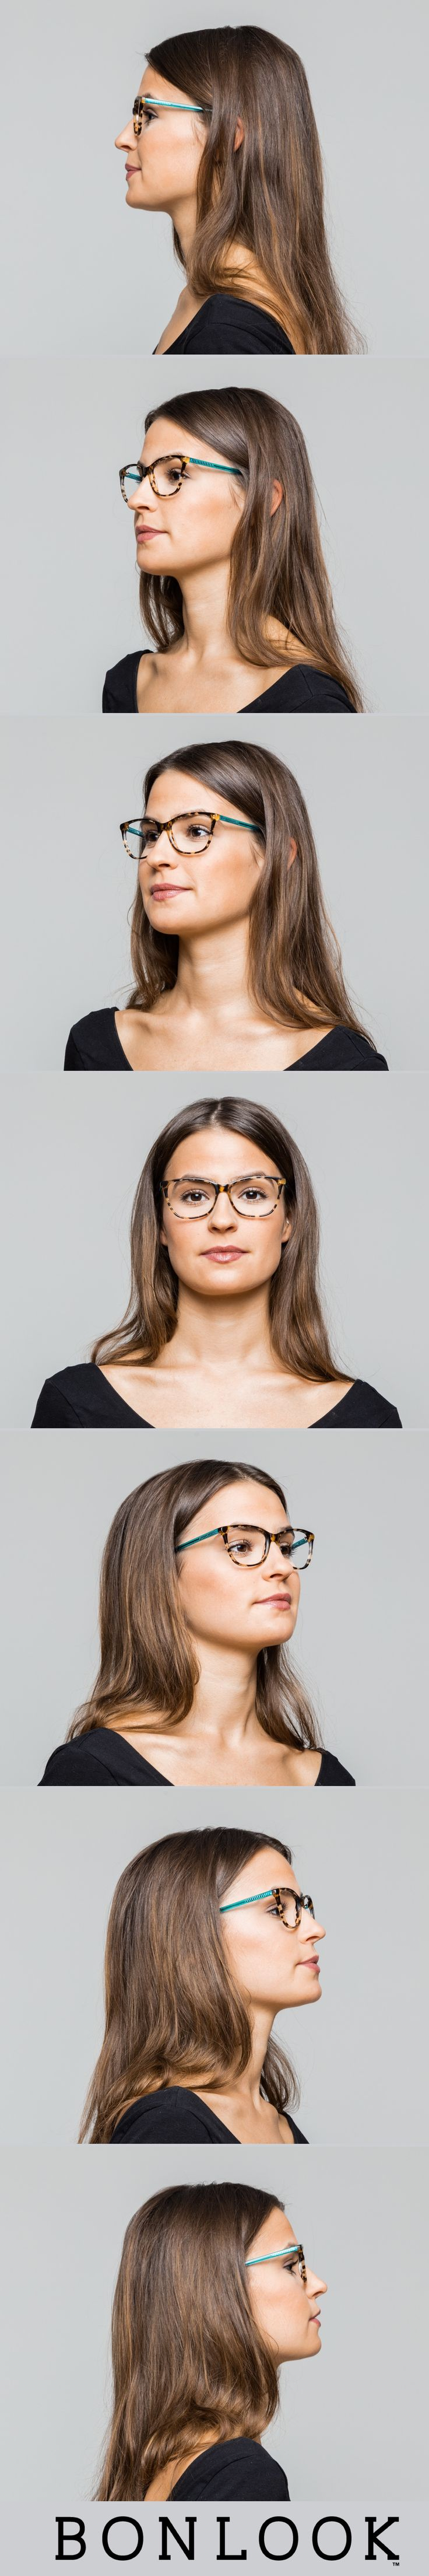 Flair Teal tort - Flair is the perfect eyewear for the one's that have a natural instinct for fashion. Versatile and trendy, these frames will fit every face shape with elegance.